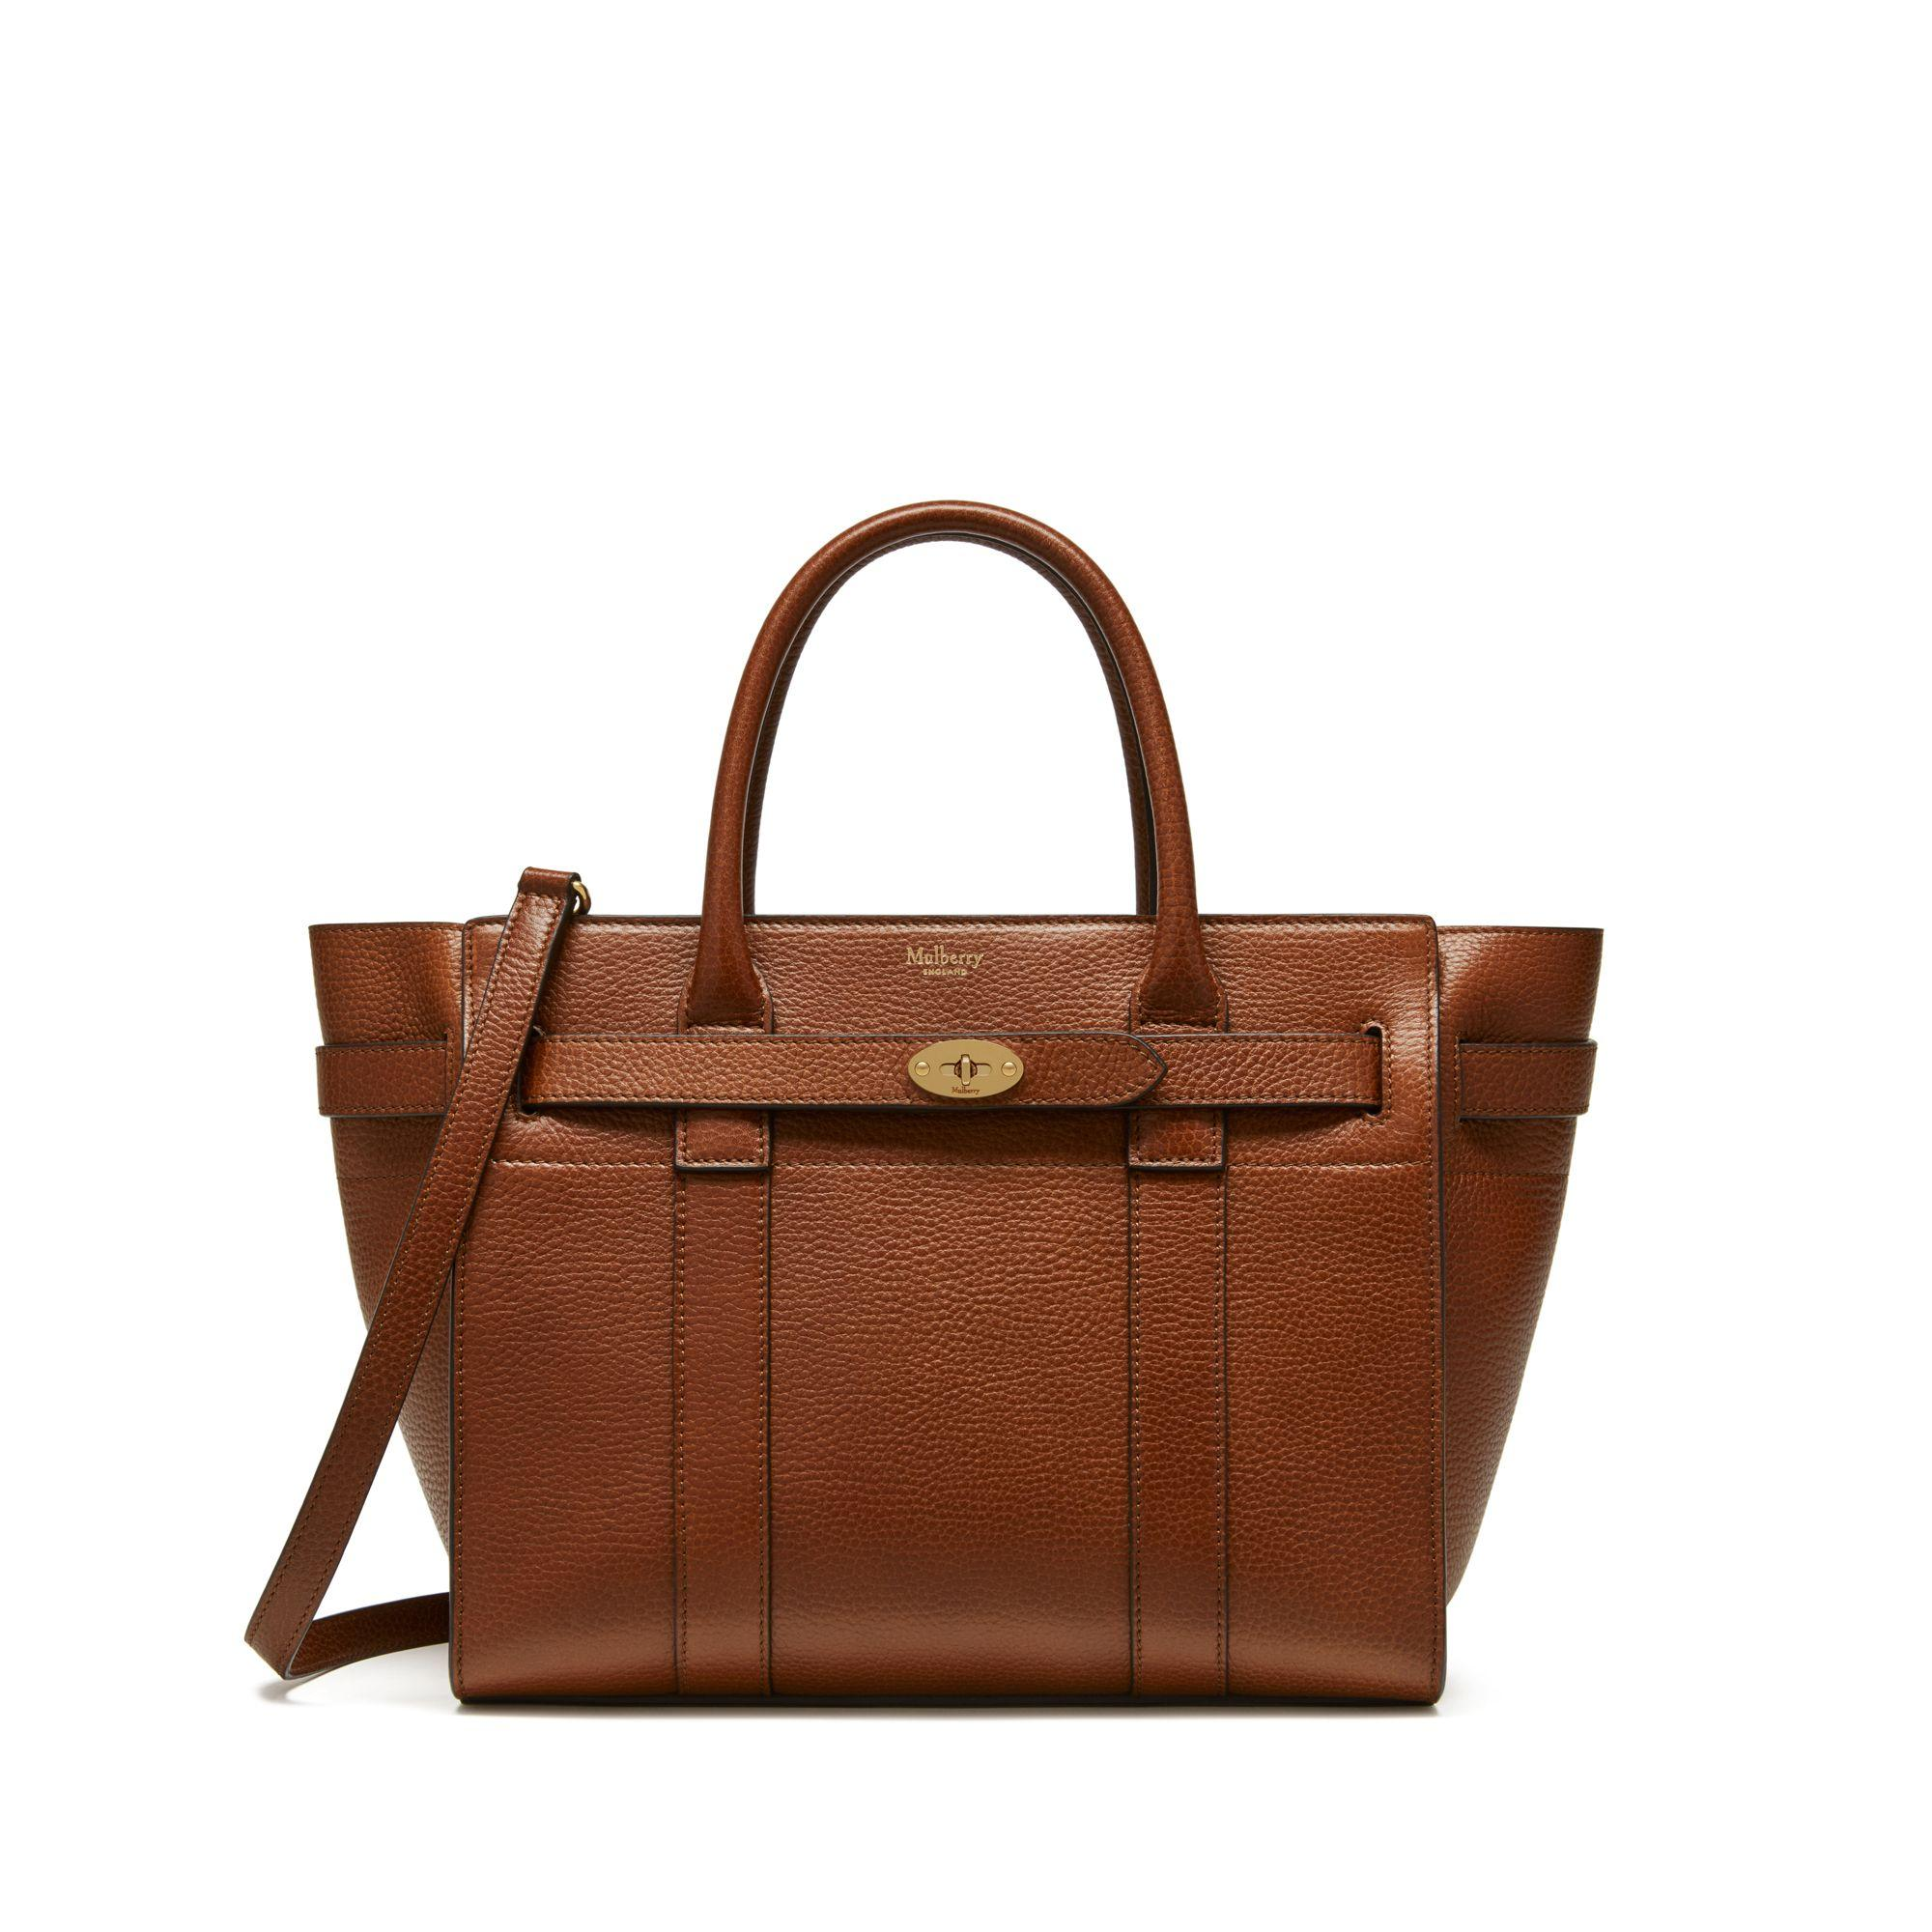 12d7bff9c05b Lyst - Mulberry Small Zipped Bayswater In Oak Natural Grain Leather ...